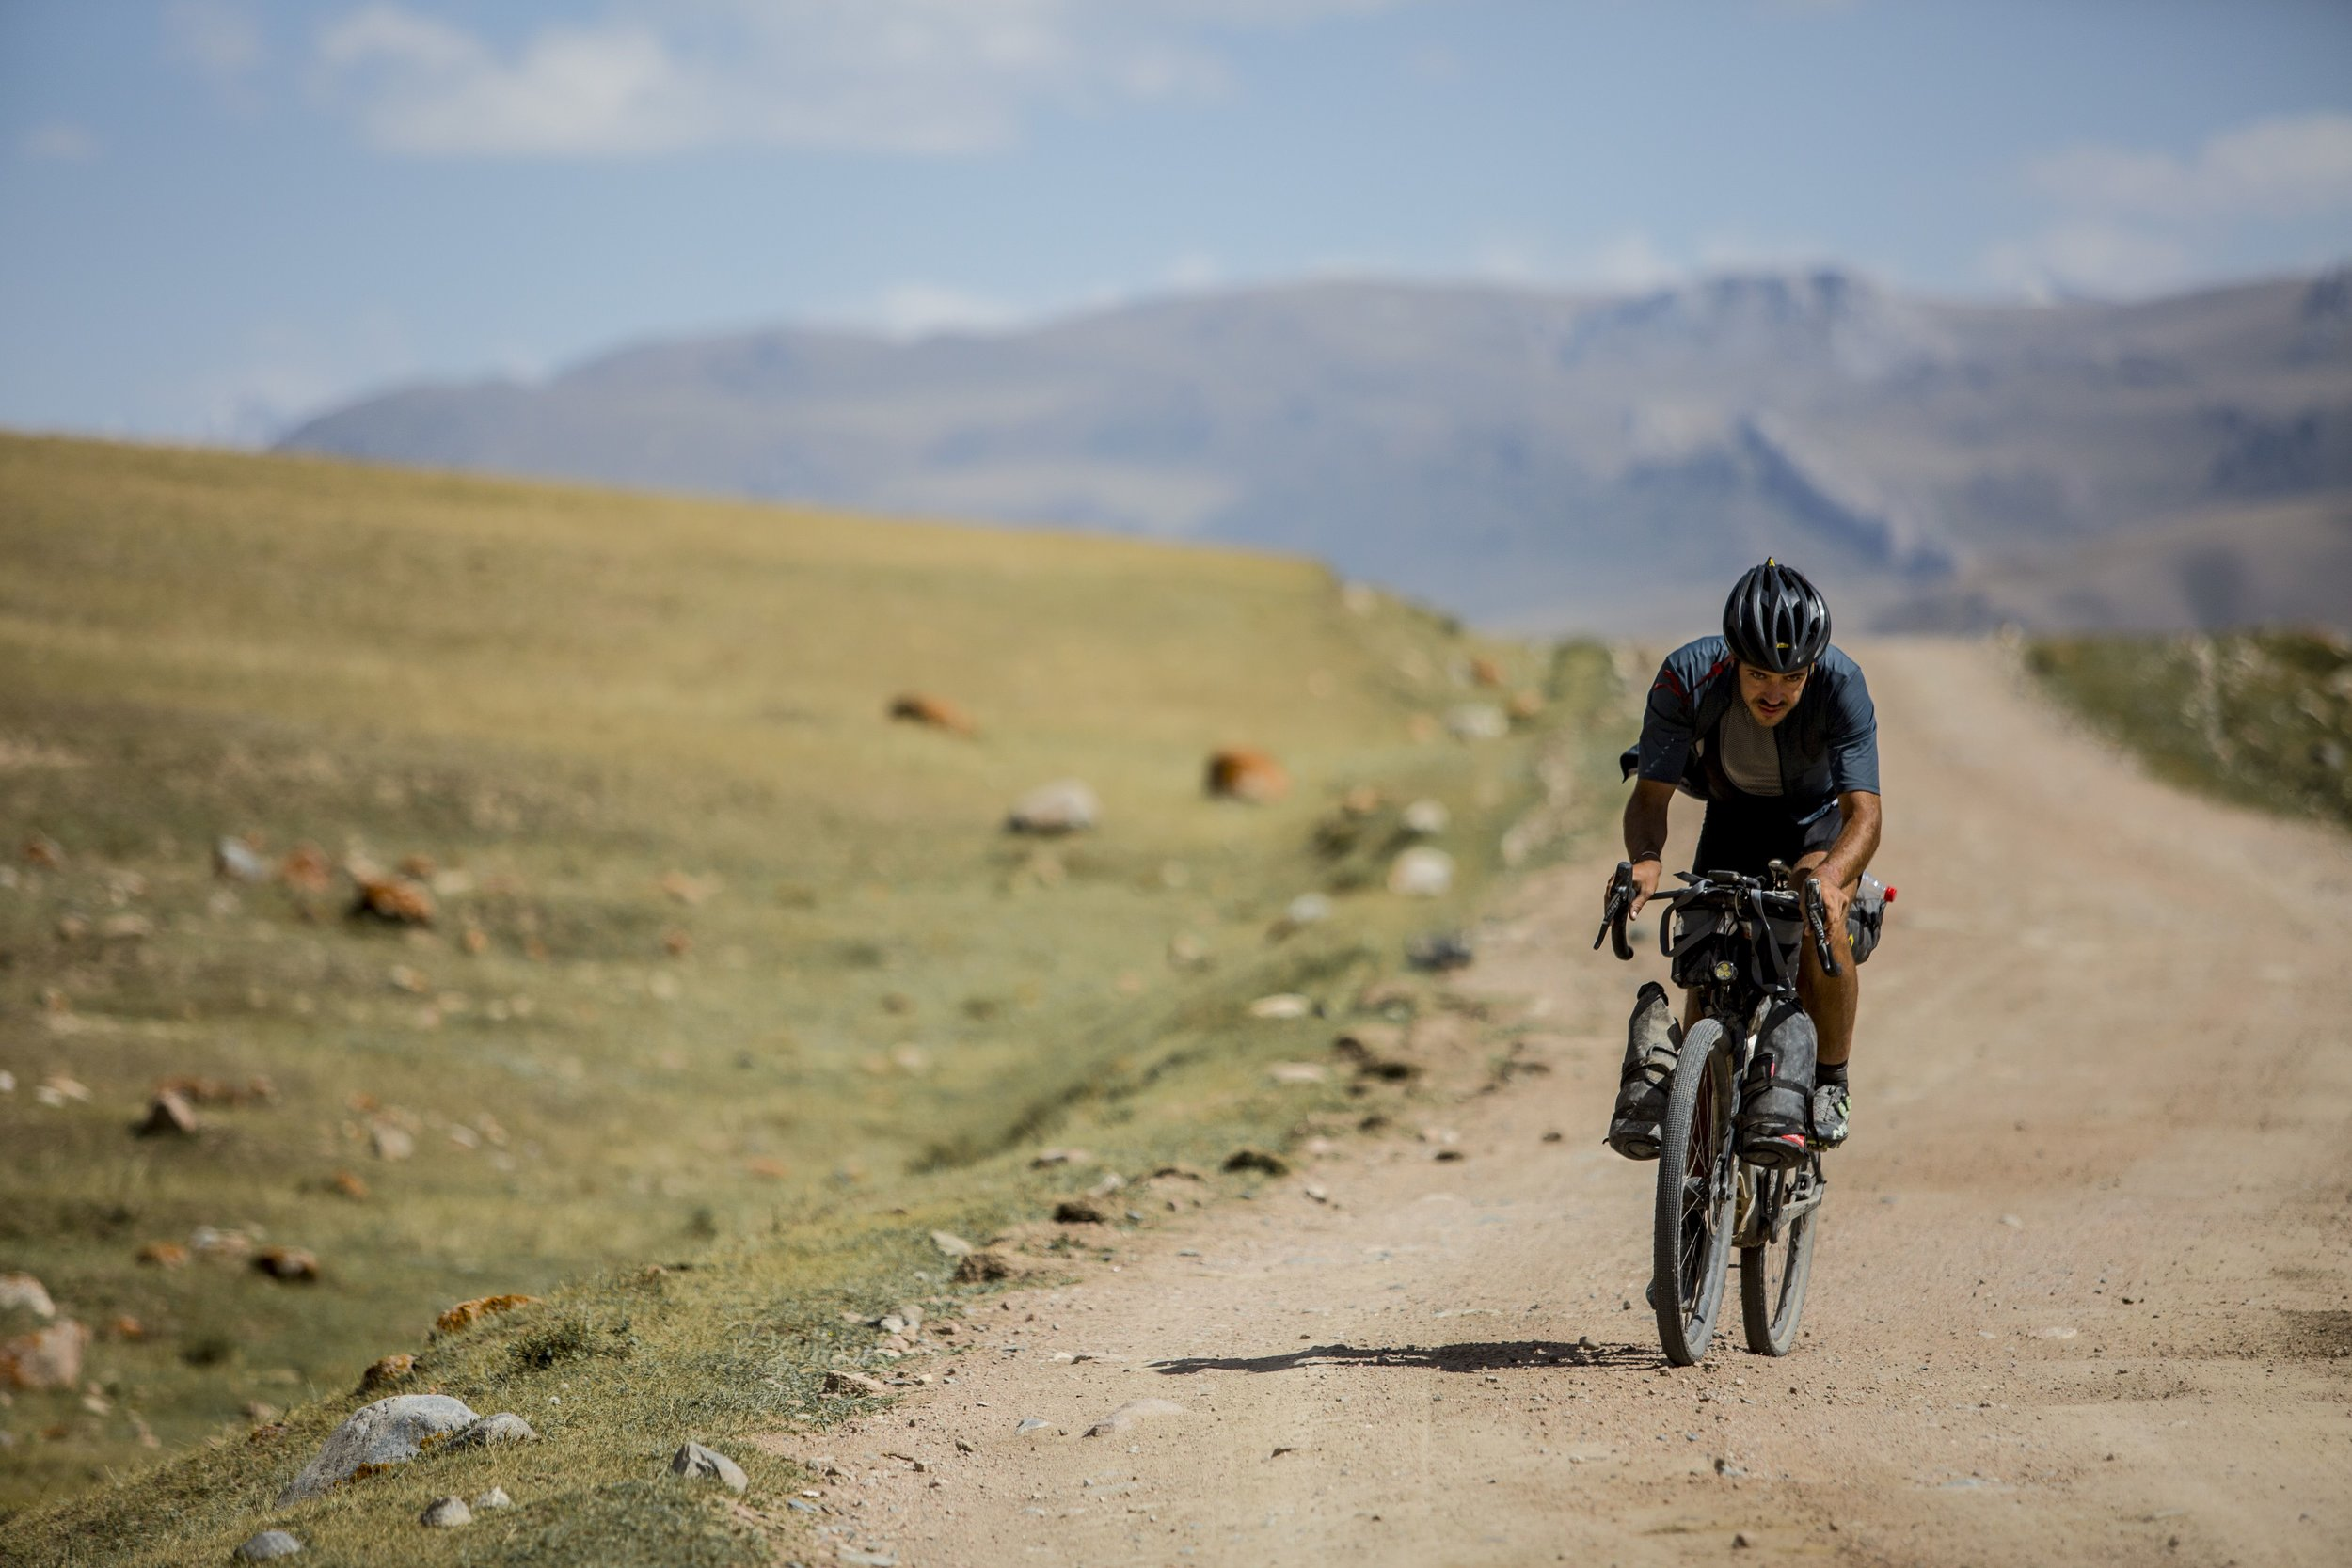 Levi at the Silk Road Mountain Race in 2018. Photo by  Giovanni Maria Pizzato